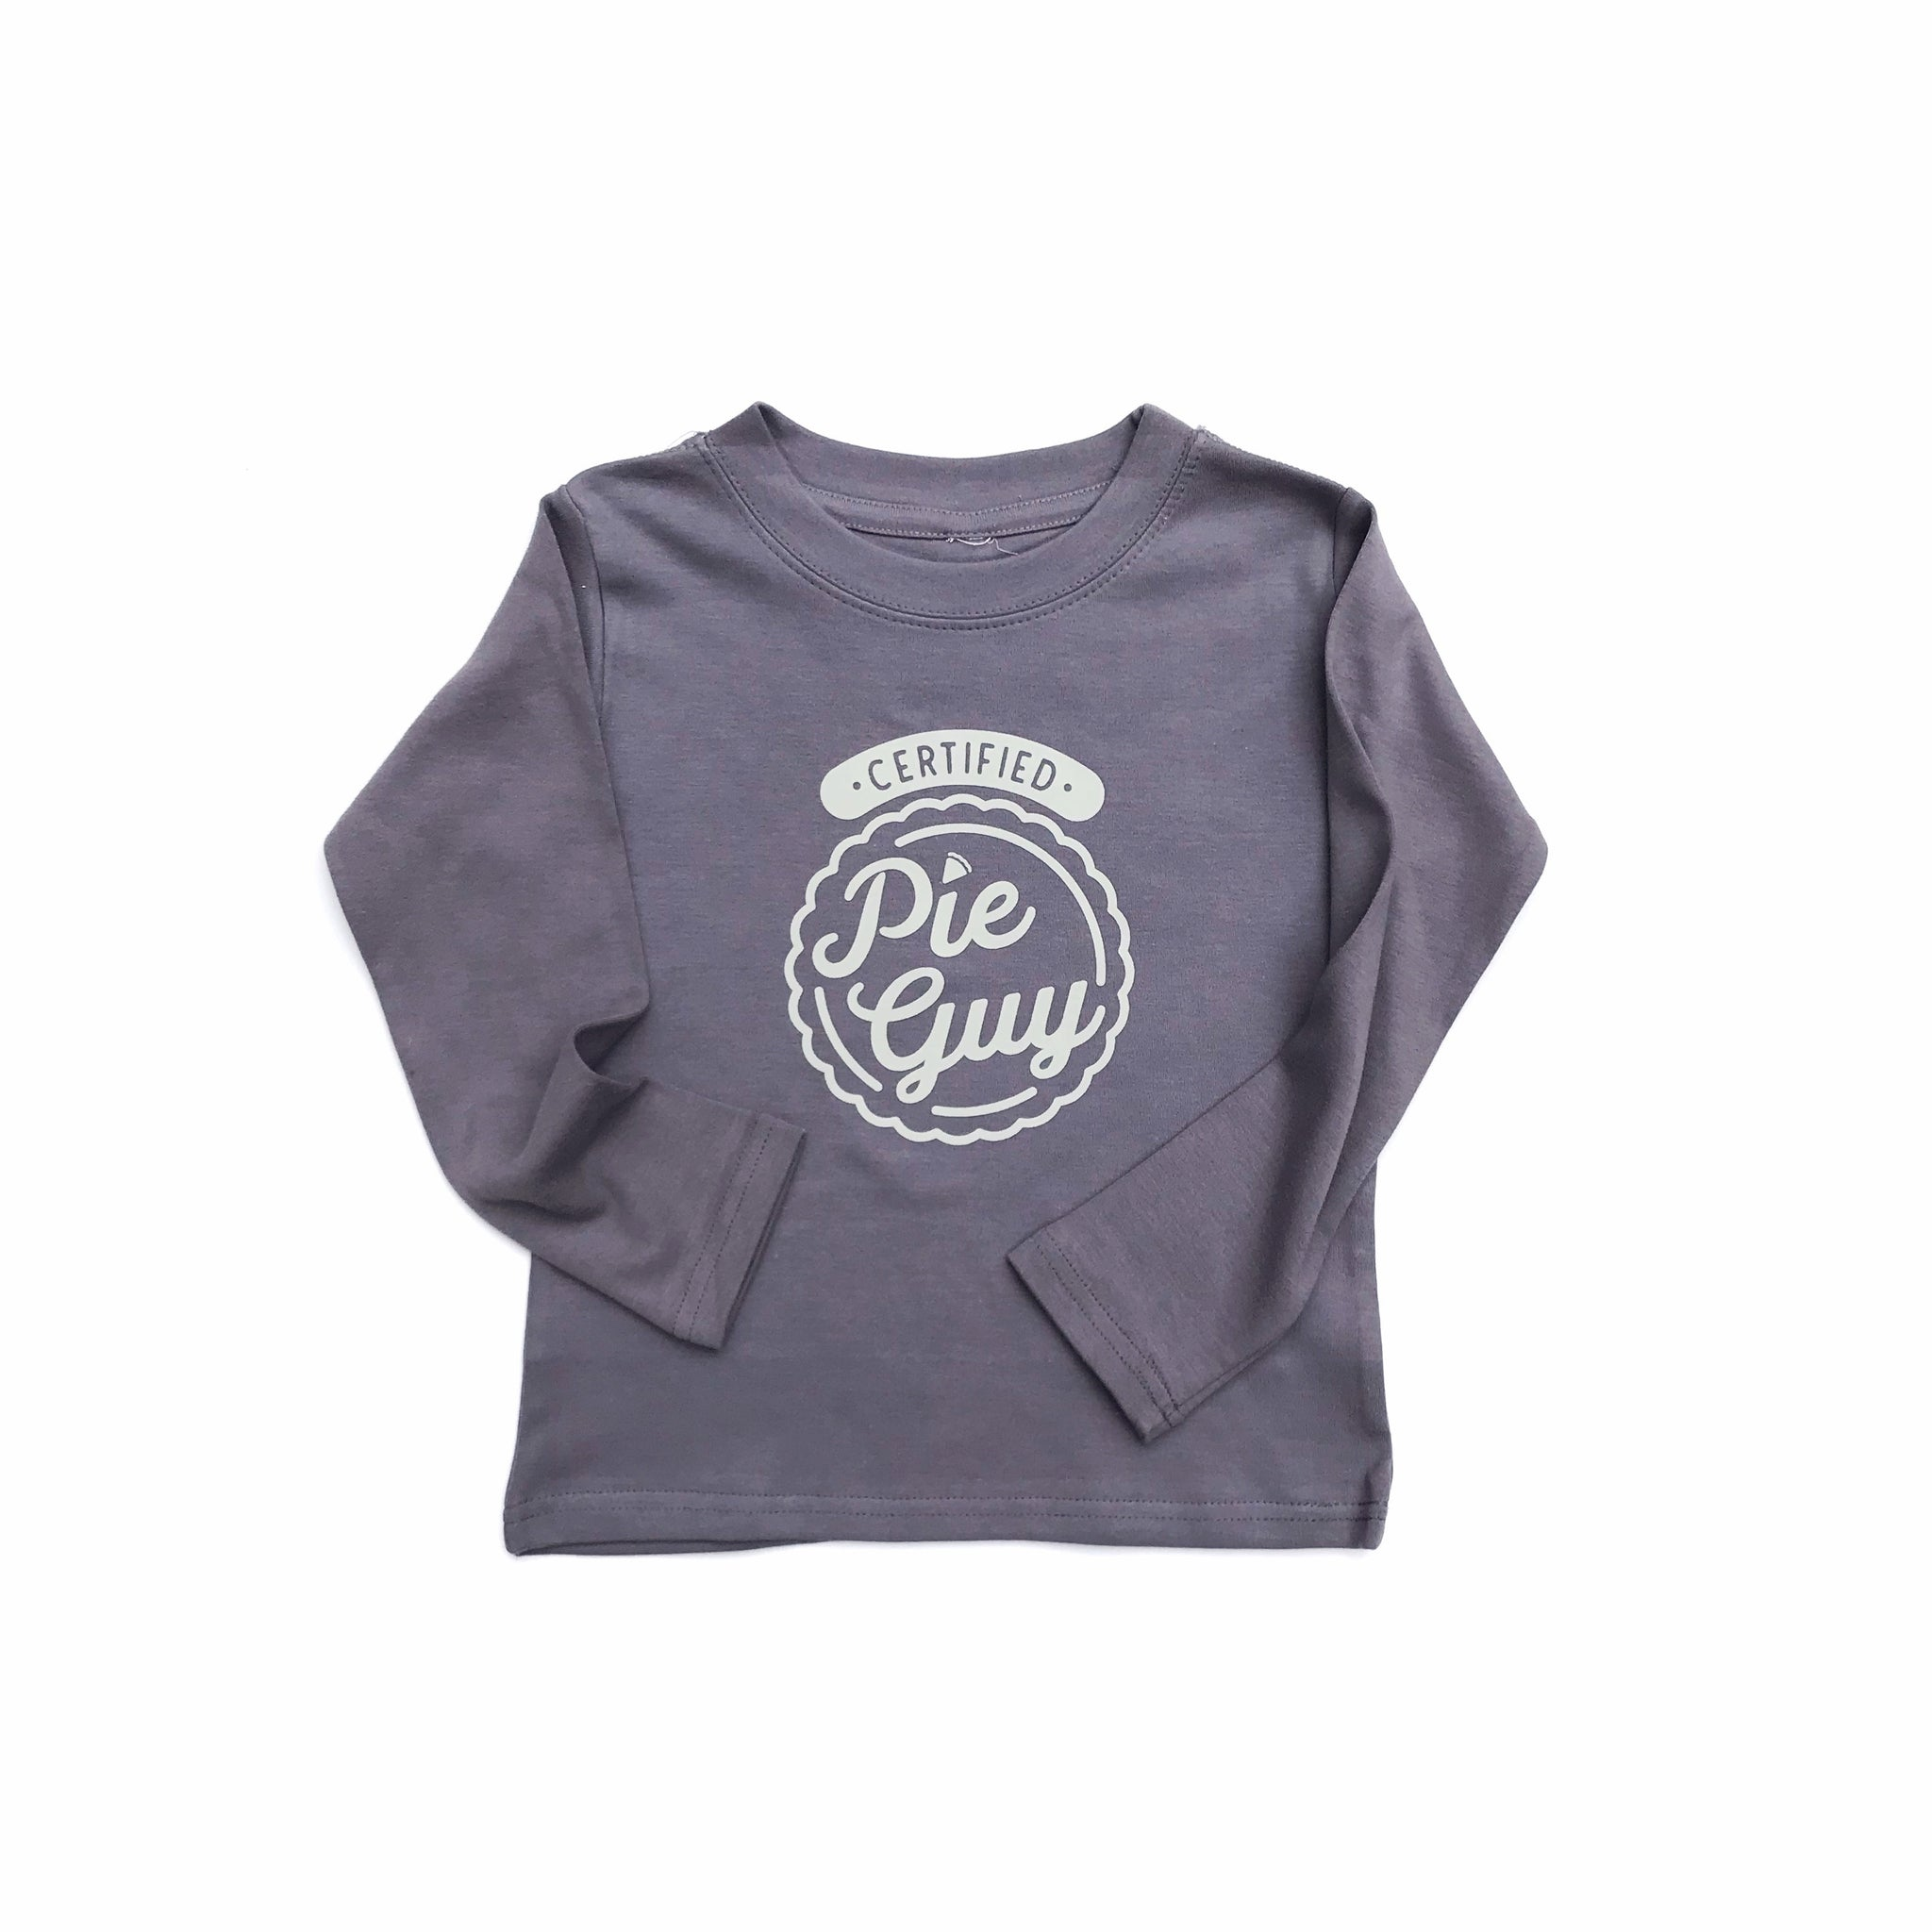 Pie Guy -  LS Slate Grey